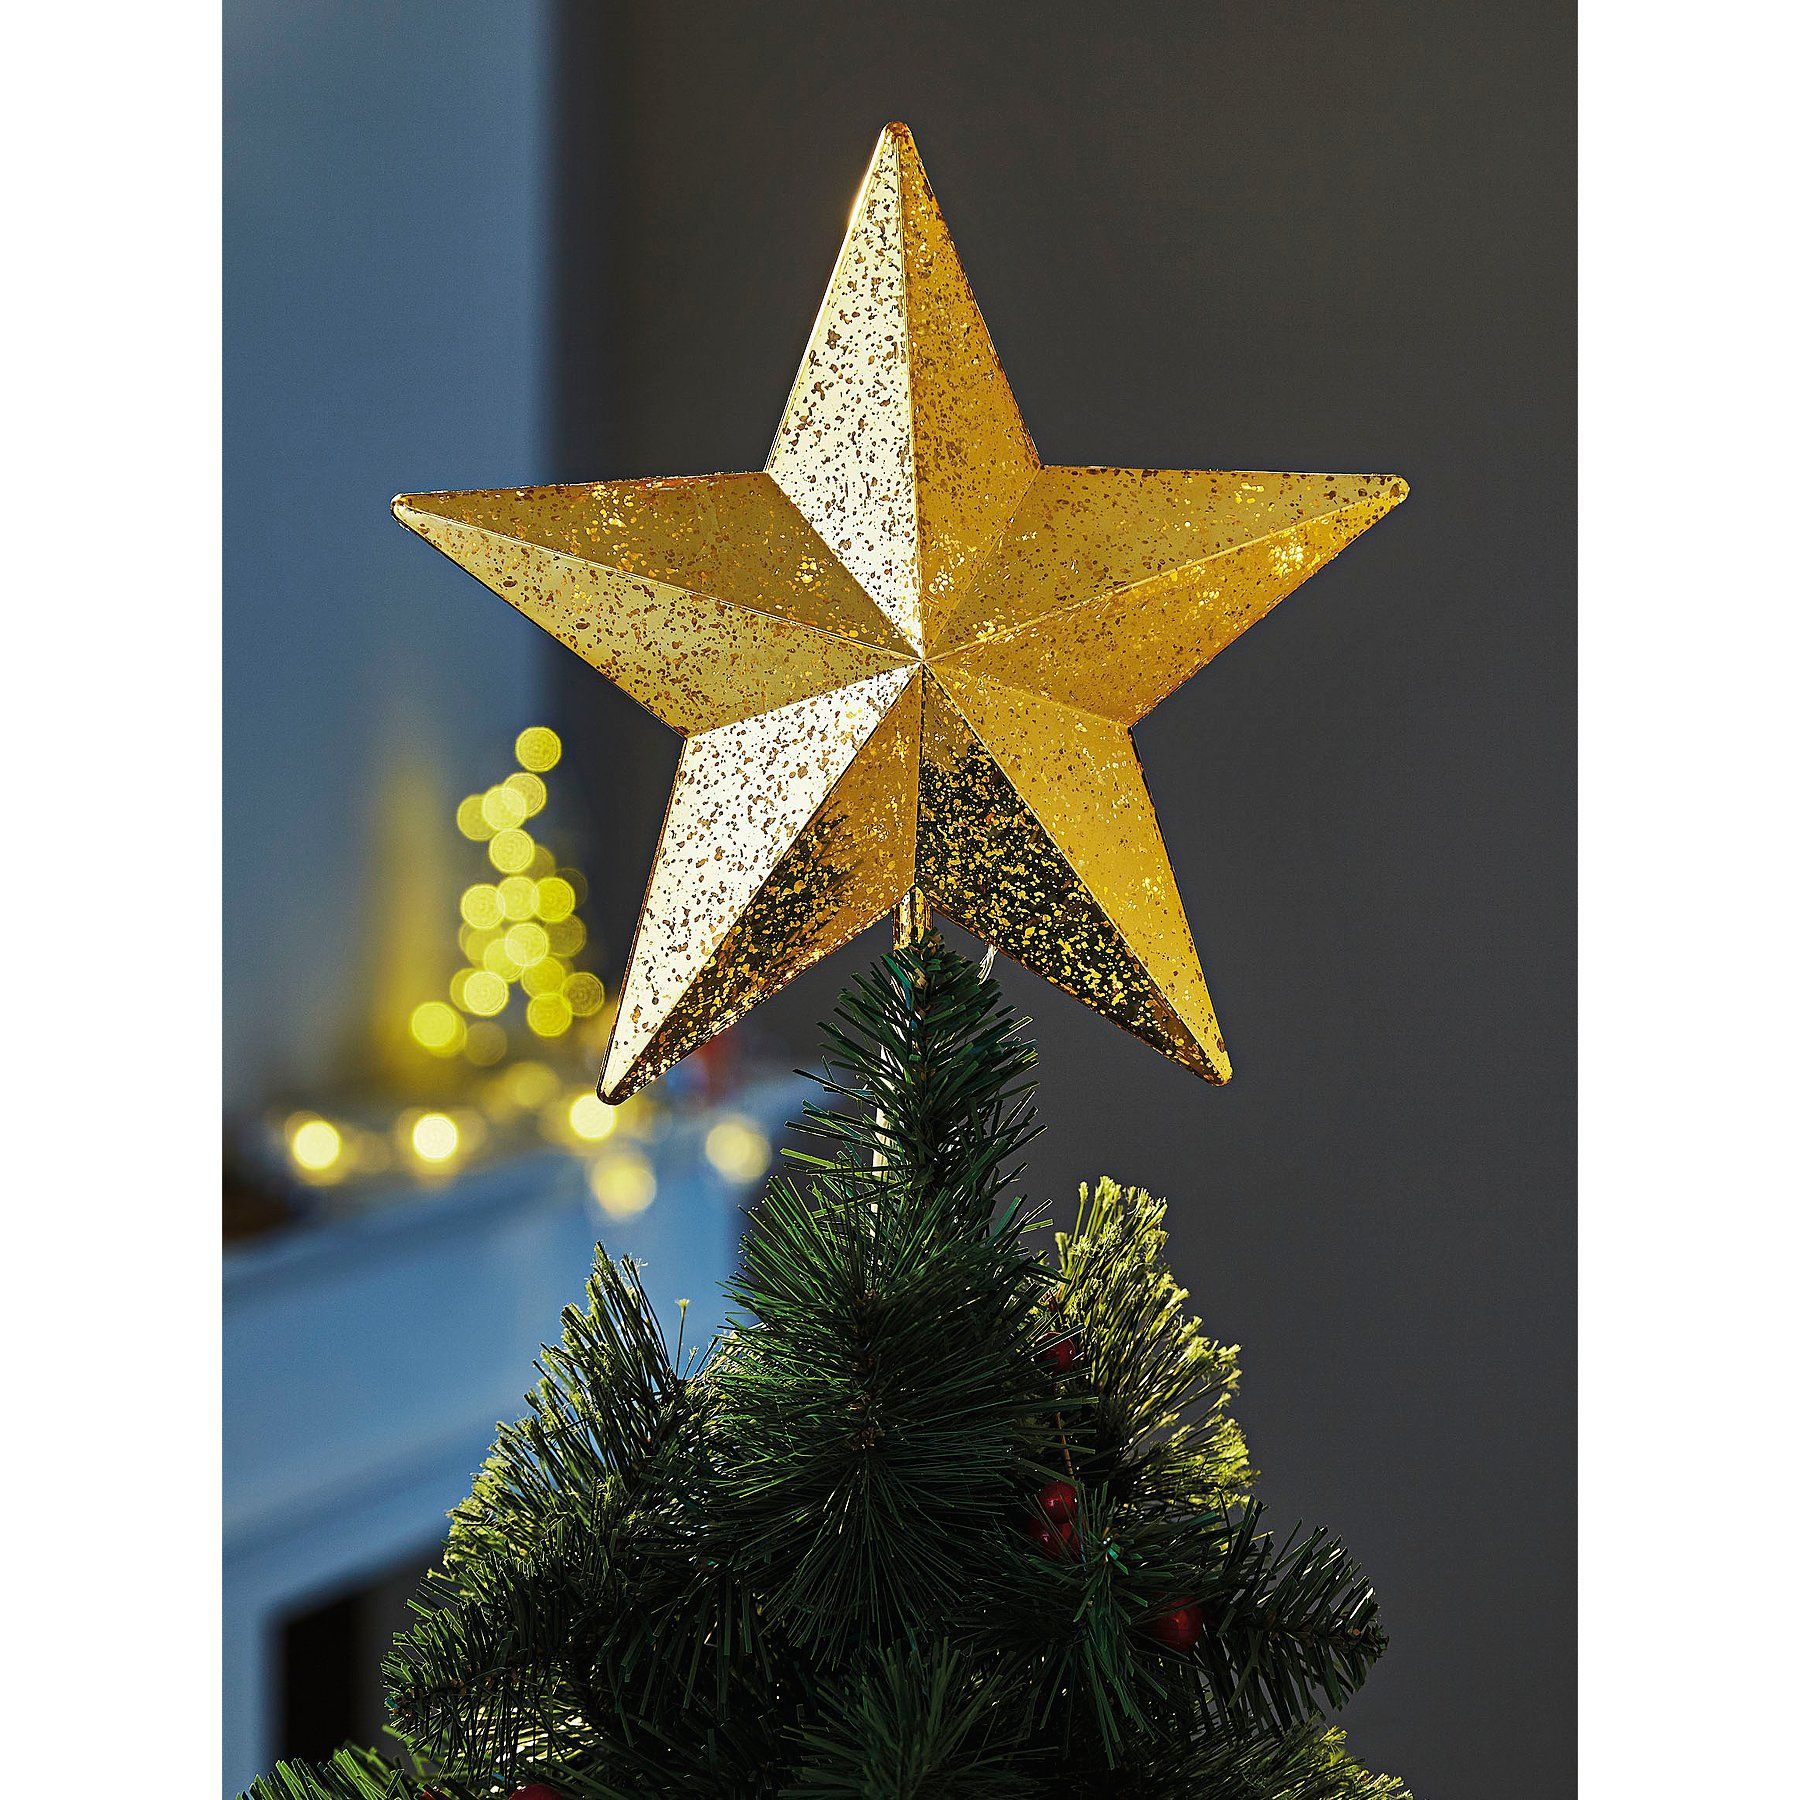 Gold Toned Led Twinkling Star Christmas Tree Topper Christmas George Christmas Tree Decorations Christmas Tree Toppers Tree Decorations